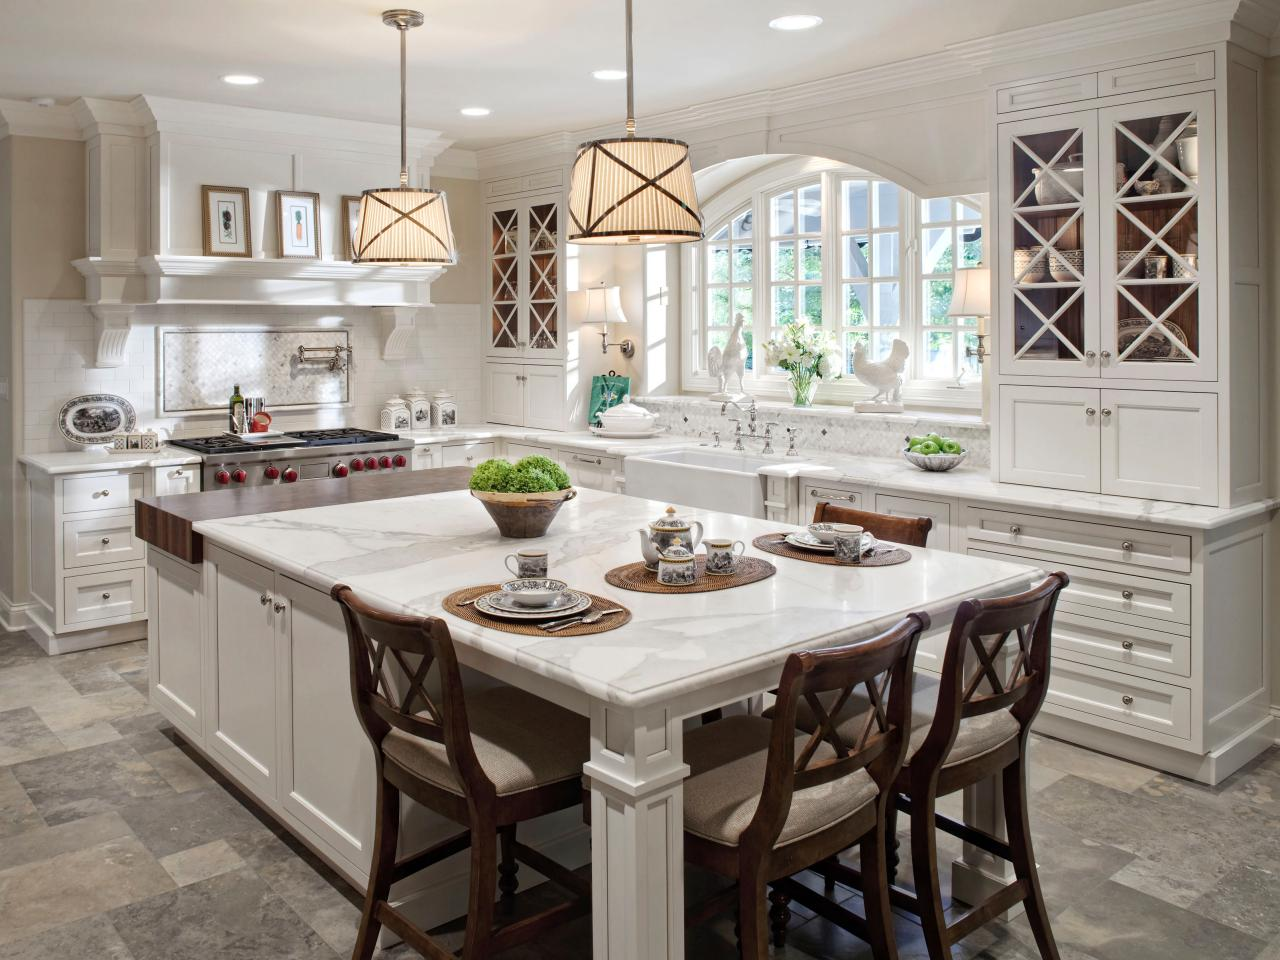 photos of kitchen islands with seating kitchen islands with seating hgtv 9087